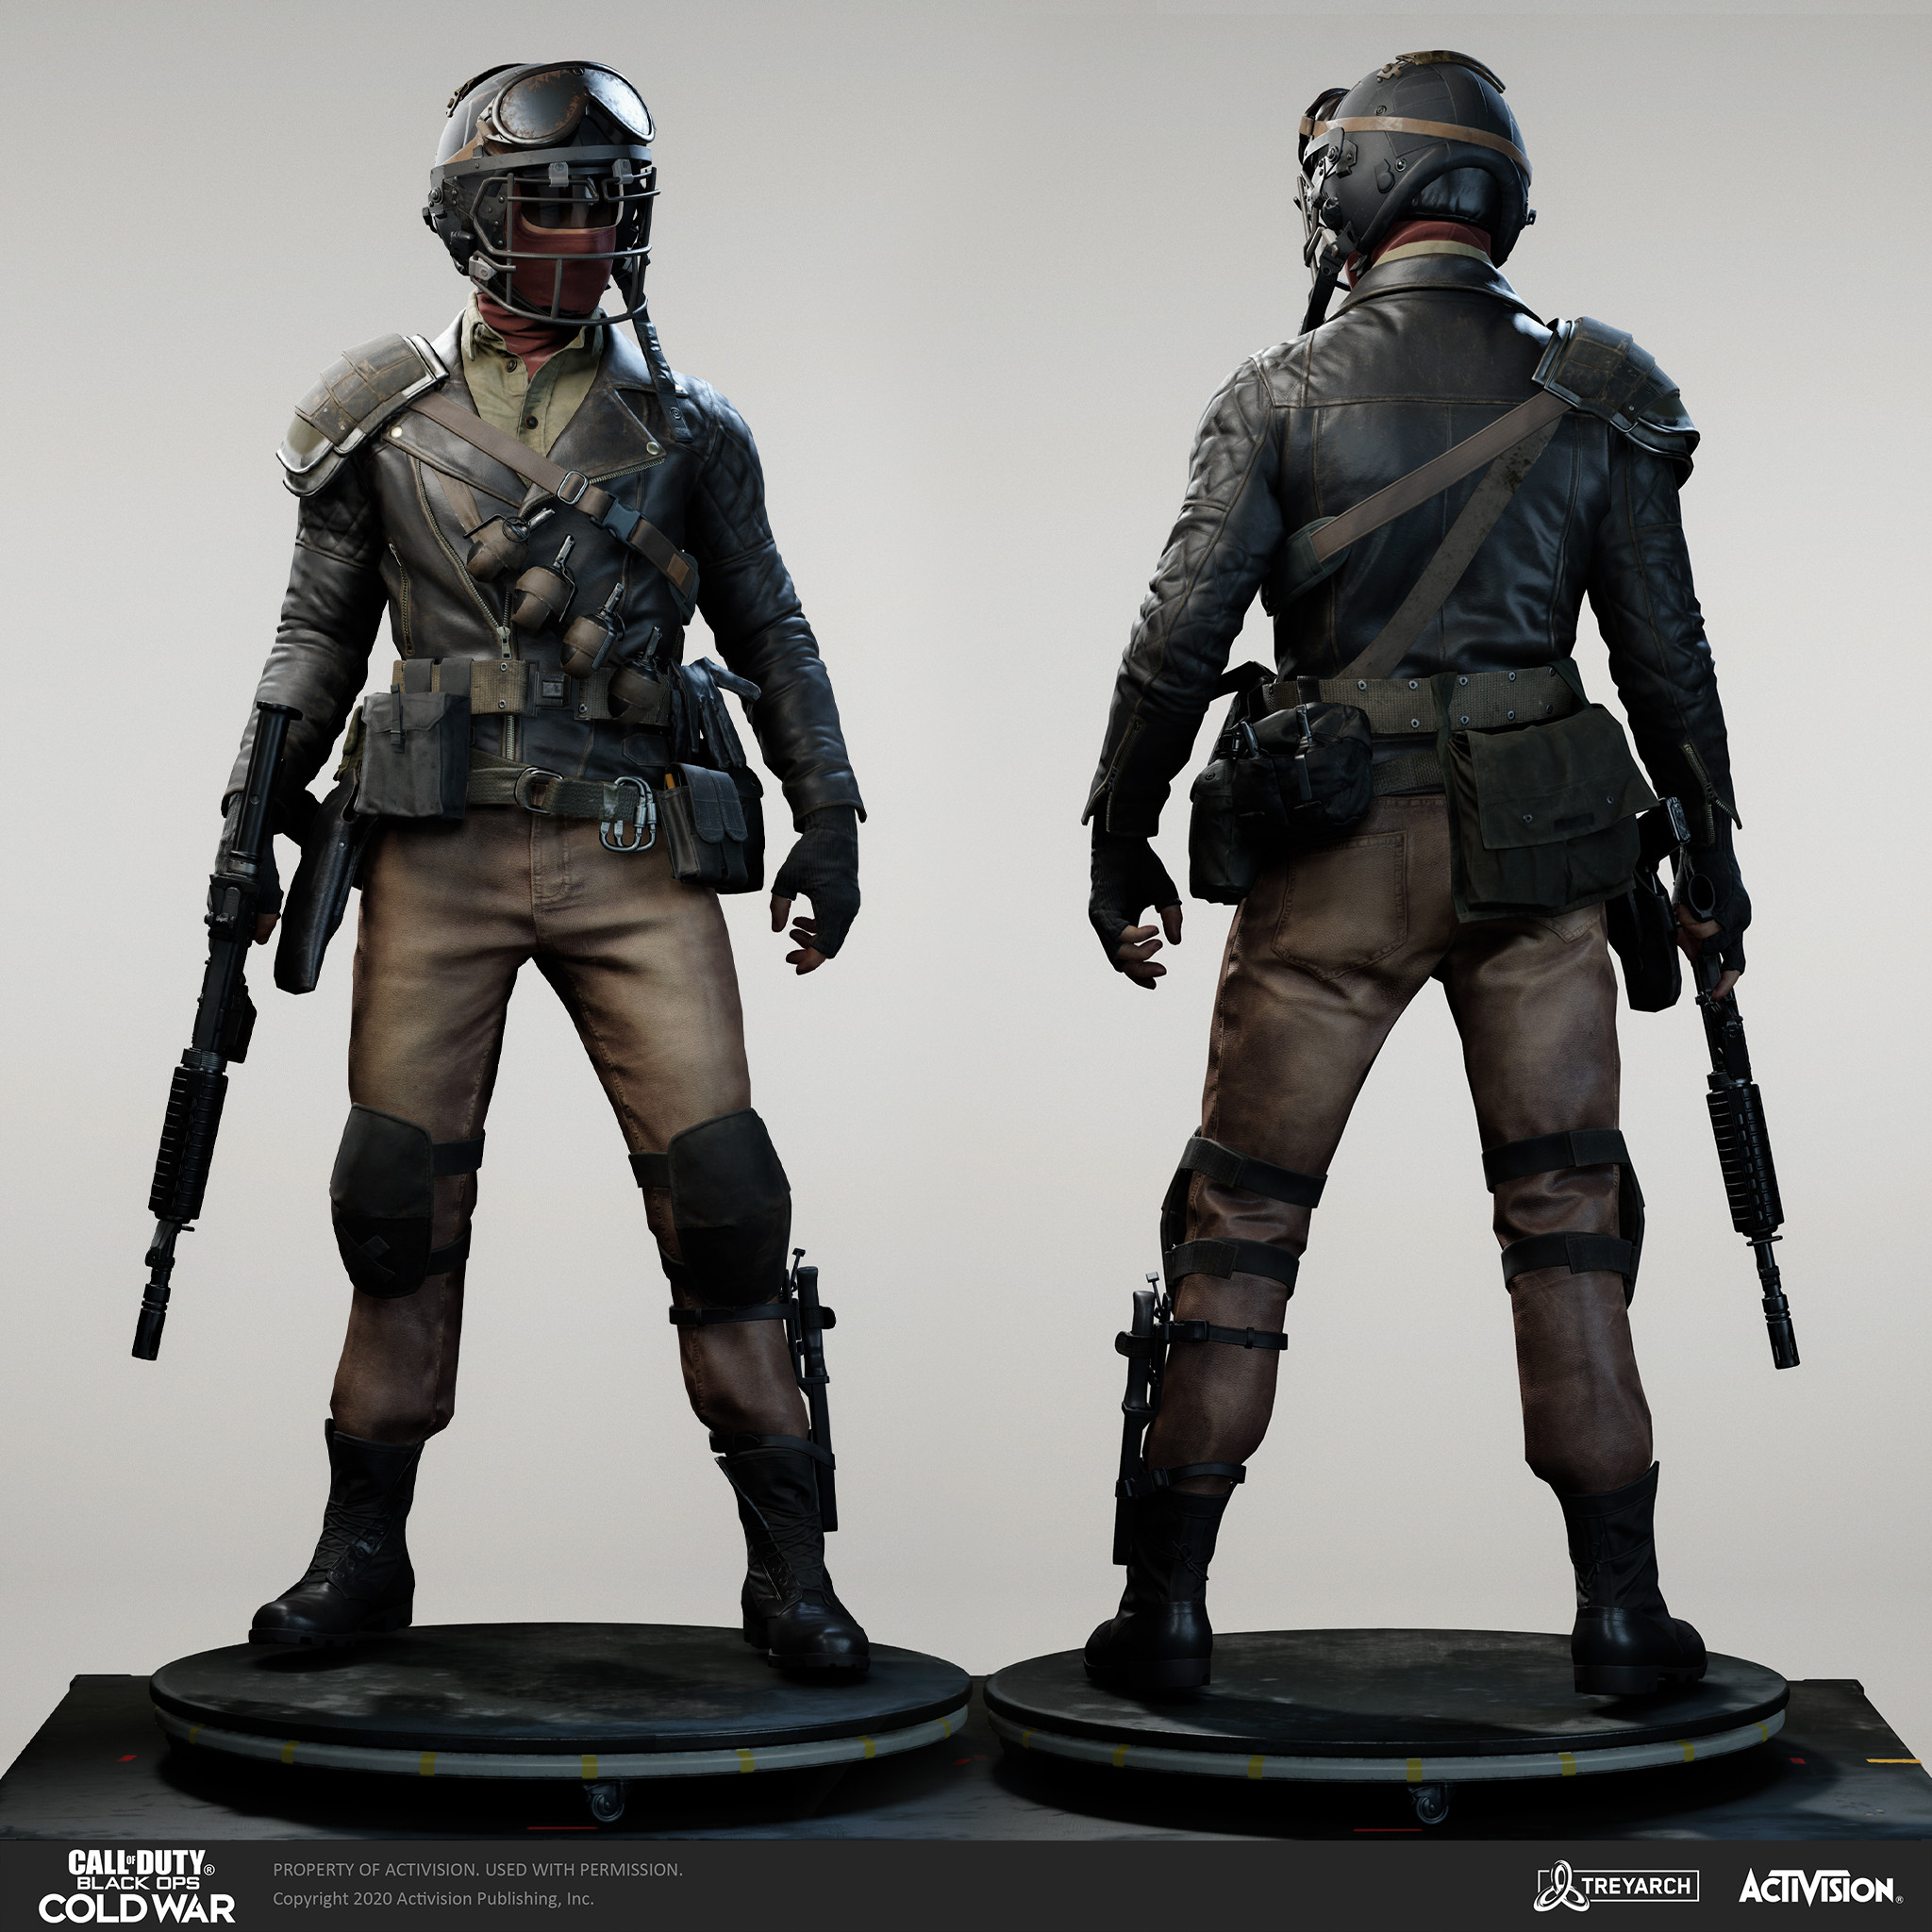 Skin for Harry Stone operator - Line Backer.  I was responsible for the design, game mesh assembly, and textures/materials. Individual models/bakes used on the character were created by the Treyarch, SHG, Raven, and OS teams.